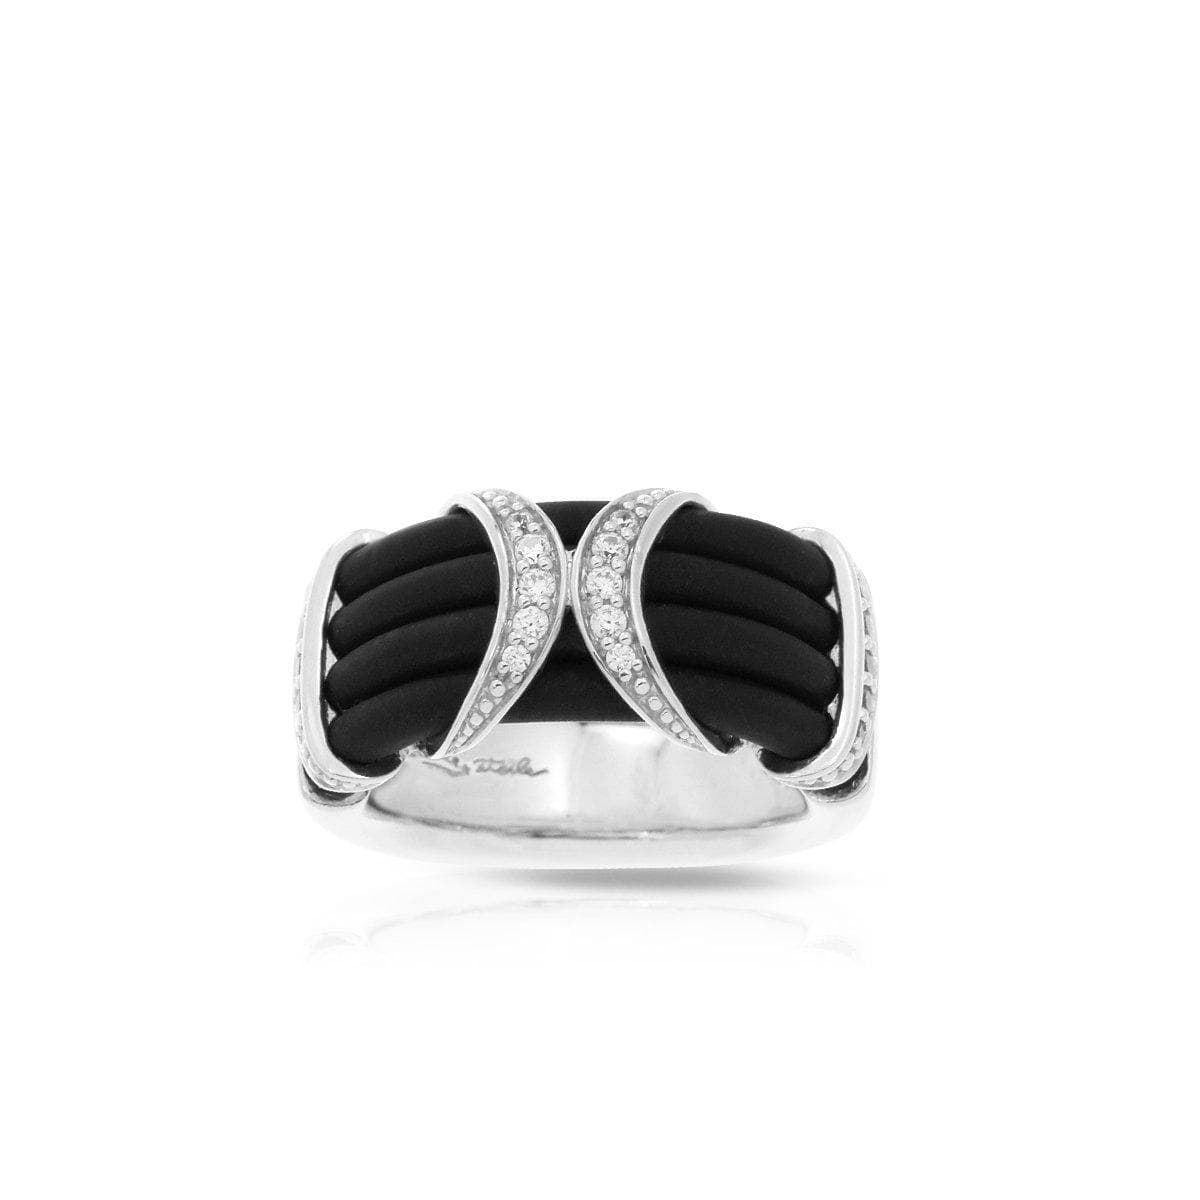 Xena Black Ring-Belle Etoile-Renee Taylor Gallery